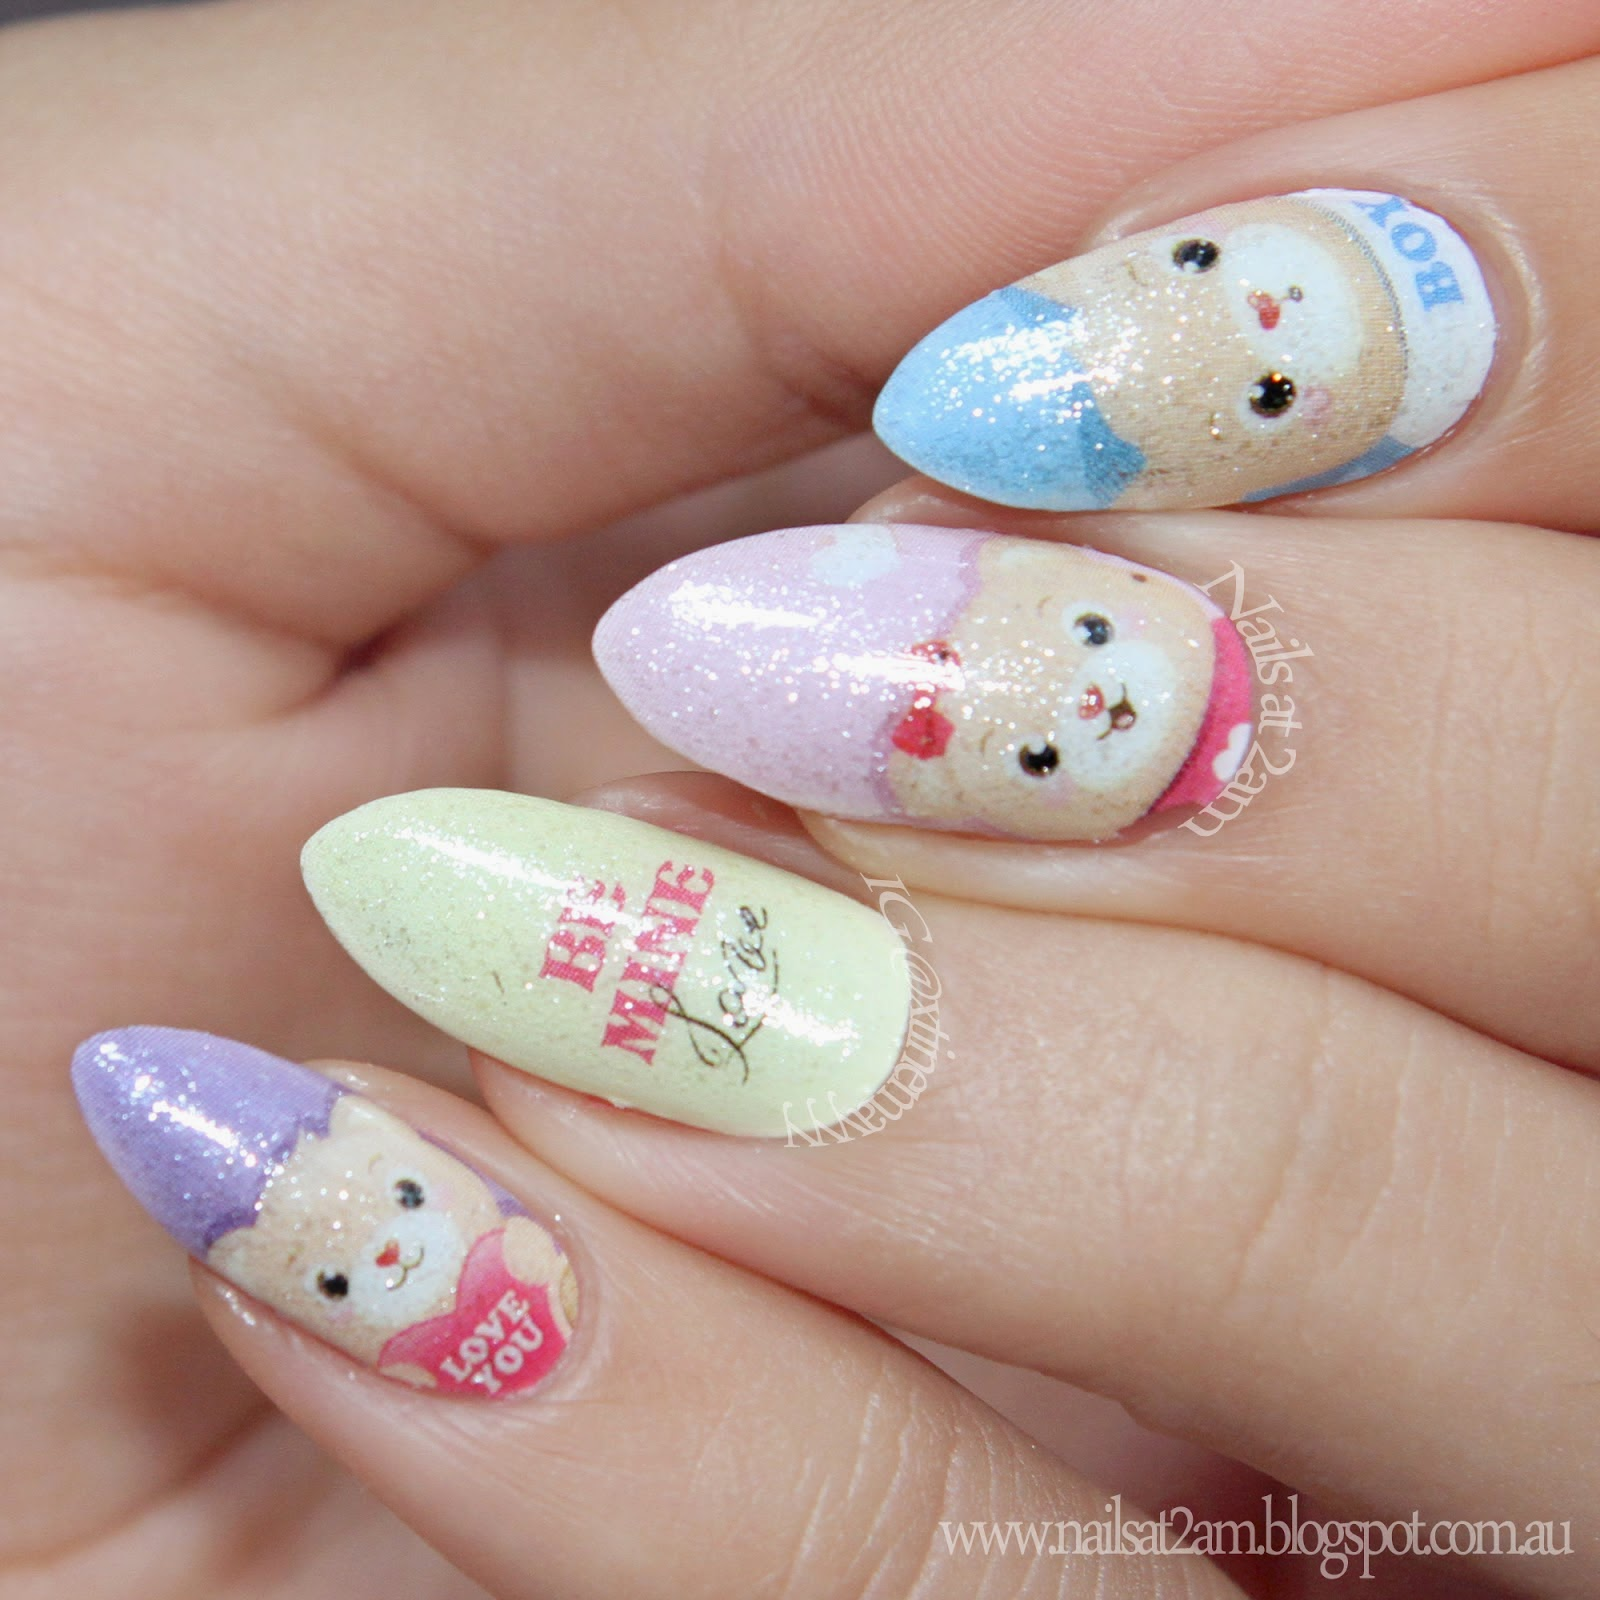 365 Days Of Nail Art March 2014: Born Pretty Store Blog: March Nail Art Designs Show